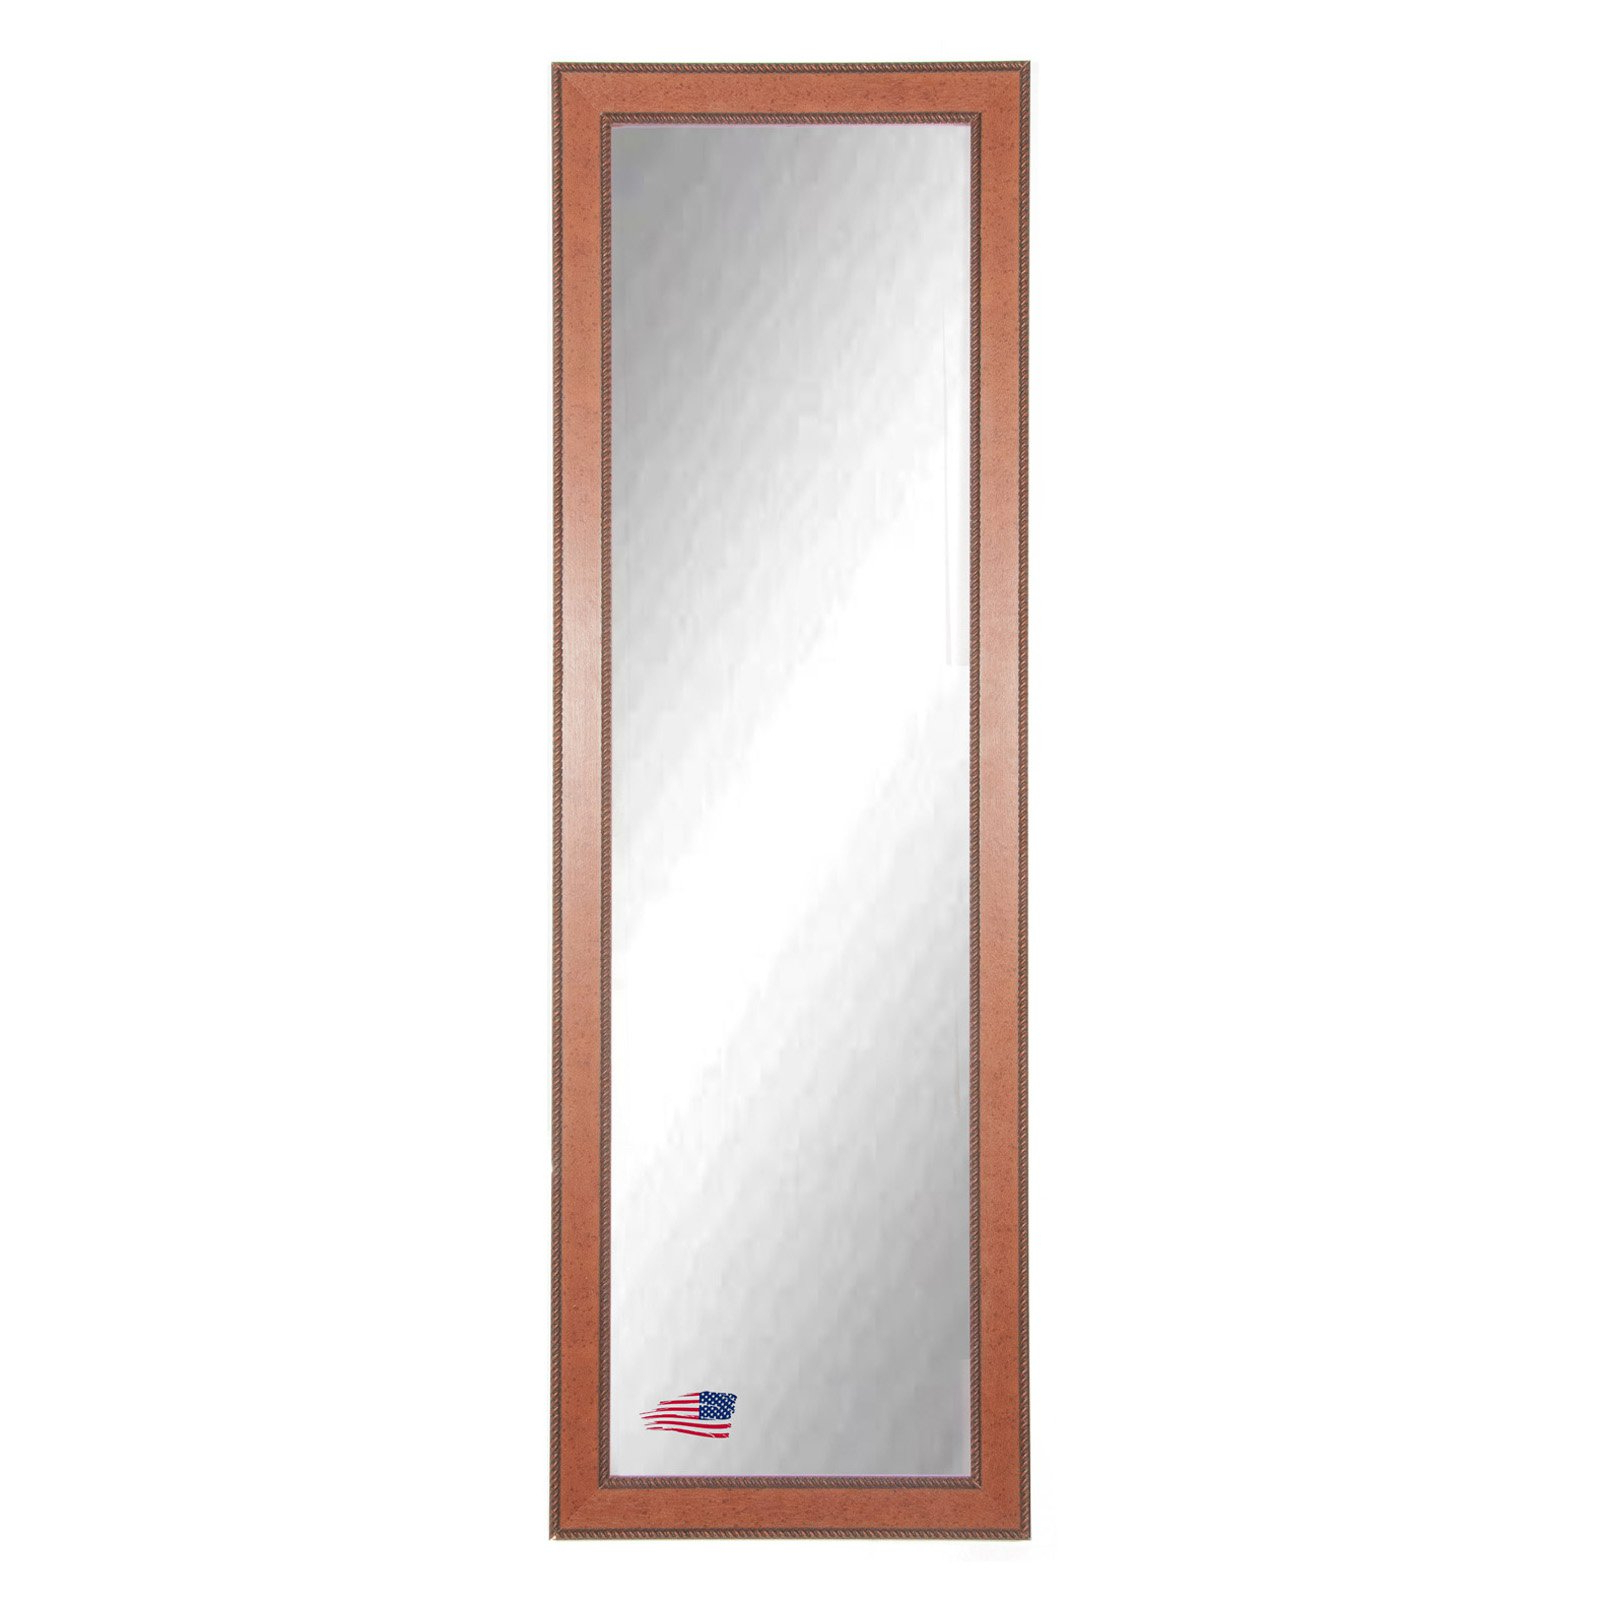 Latest Rayne Mirrors Western Rope Full Length Body Wall Mirror Pertaining To Full Size Wall Mirrors (Gallery 13 of 20)